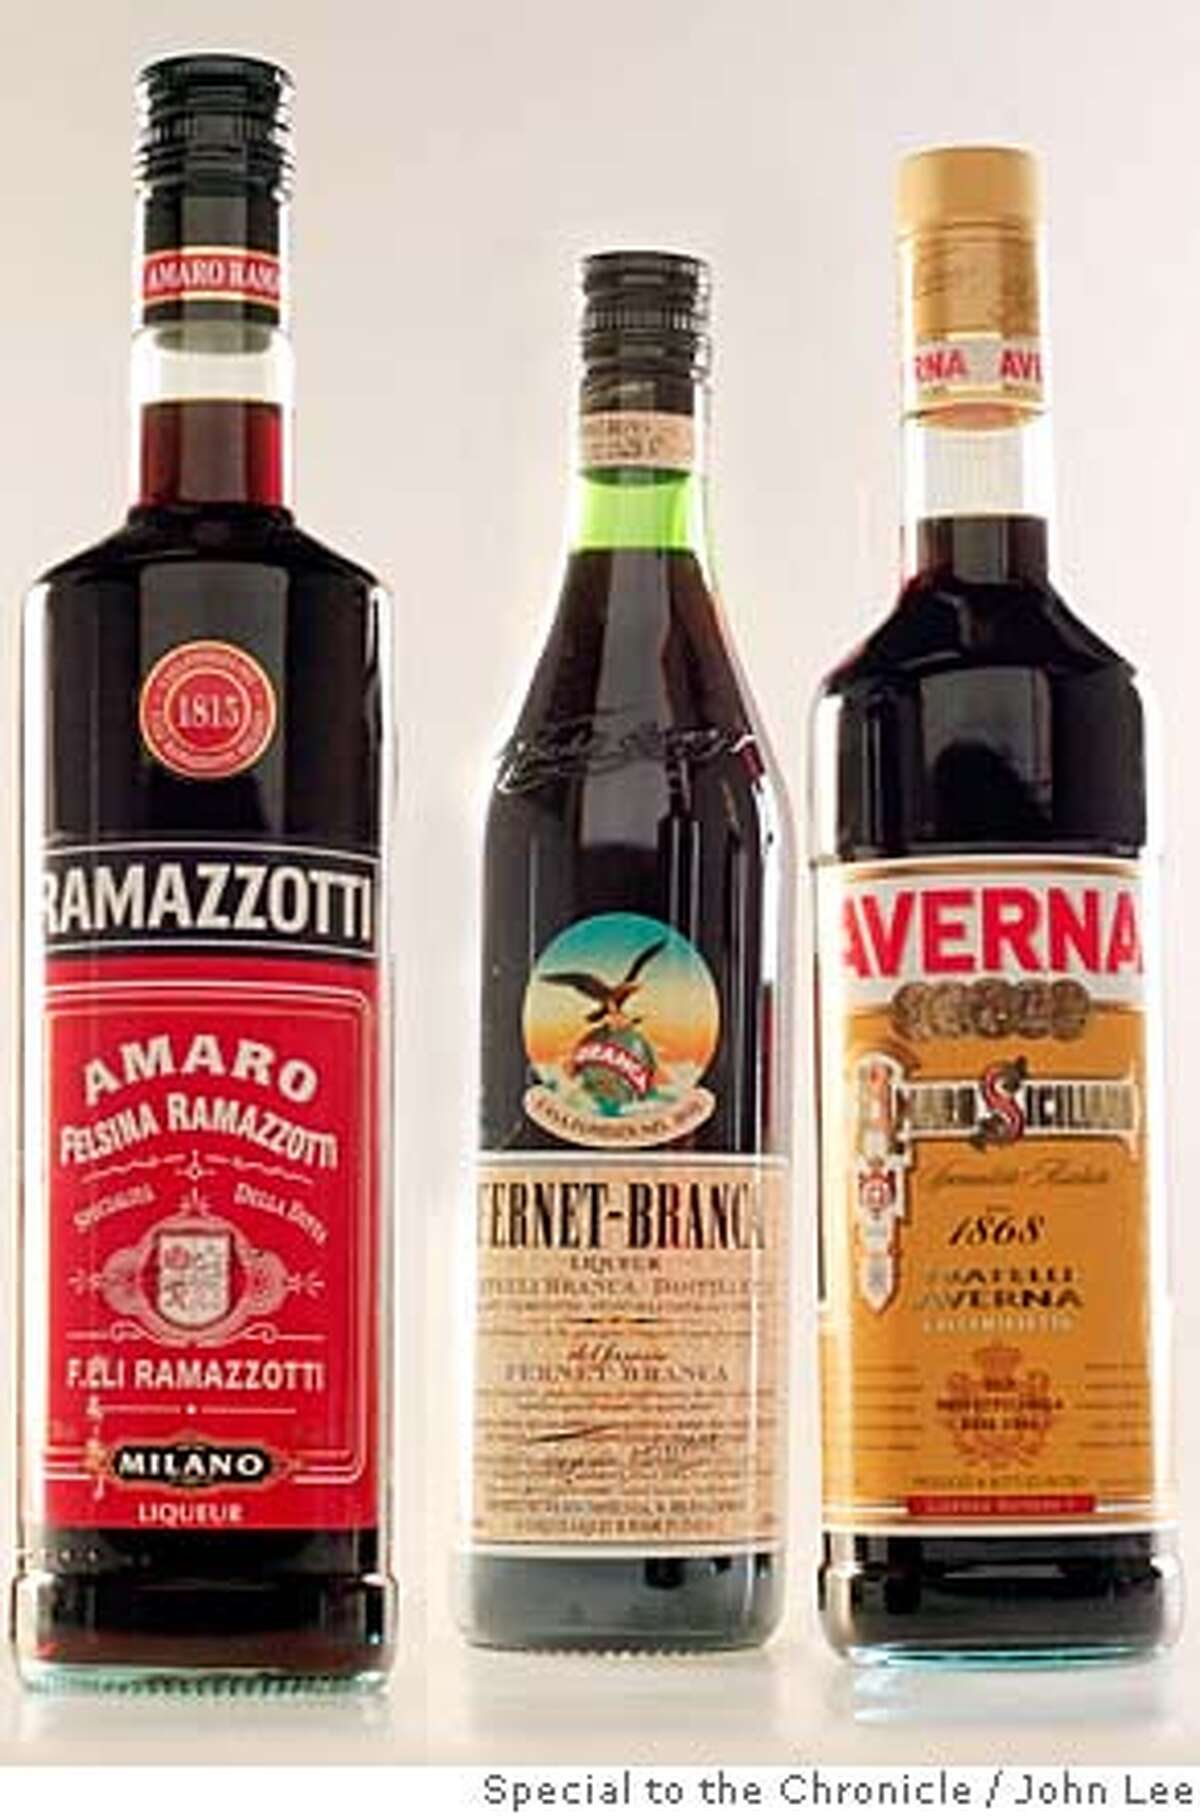 ###Live Caption:AMARI04_2_01_JOHNLEE.JPG Amaro digestive bitters bottles. By JOHN LEE/SPECIAL TO THE CHRONICLE###Caption History:AMARI04_2_01_JOHNLEE.JPG Amaro digestive bitters bottles. By JOHN LEE/SPECIAL TO THE CHRONICLE###Notes:###Special Instructions: